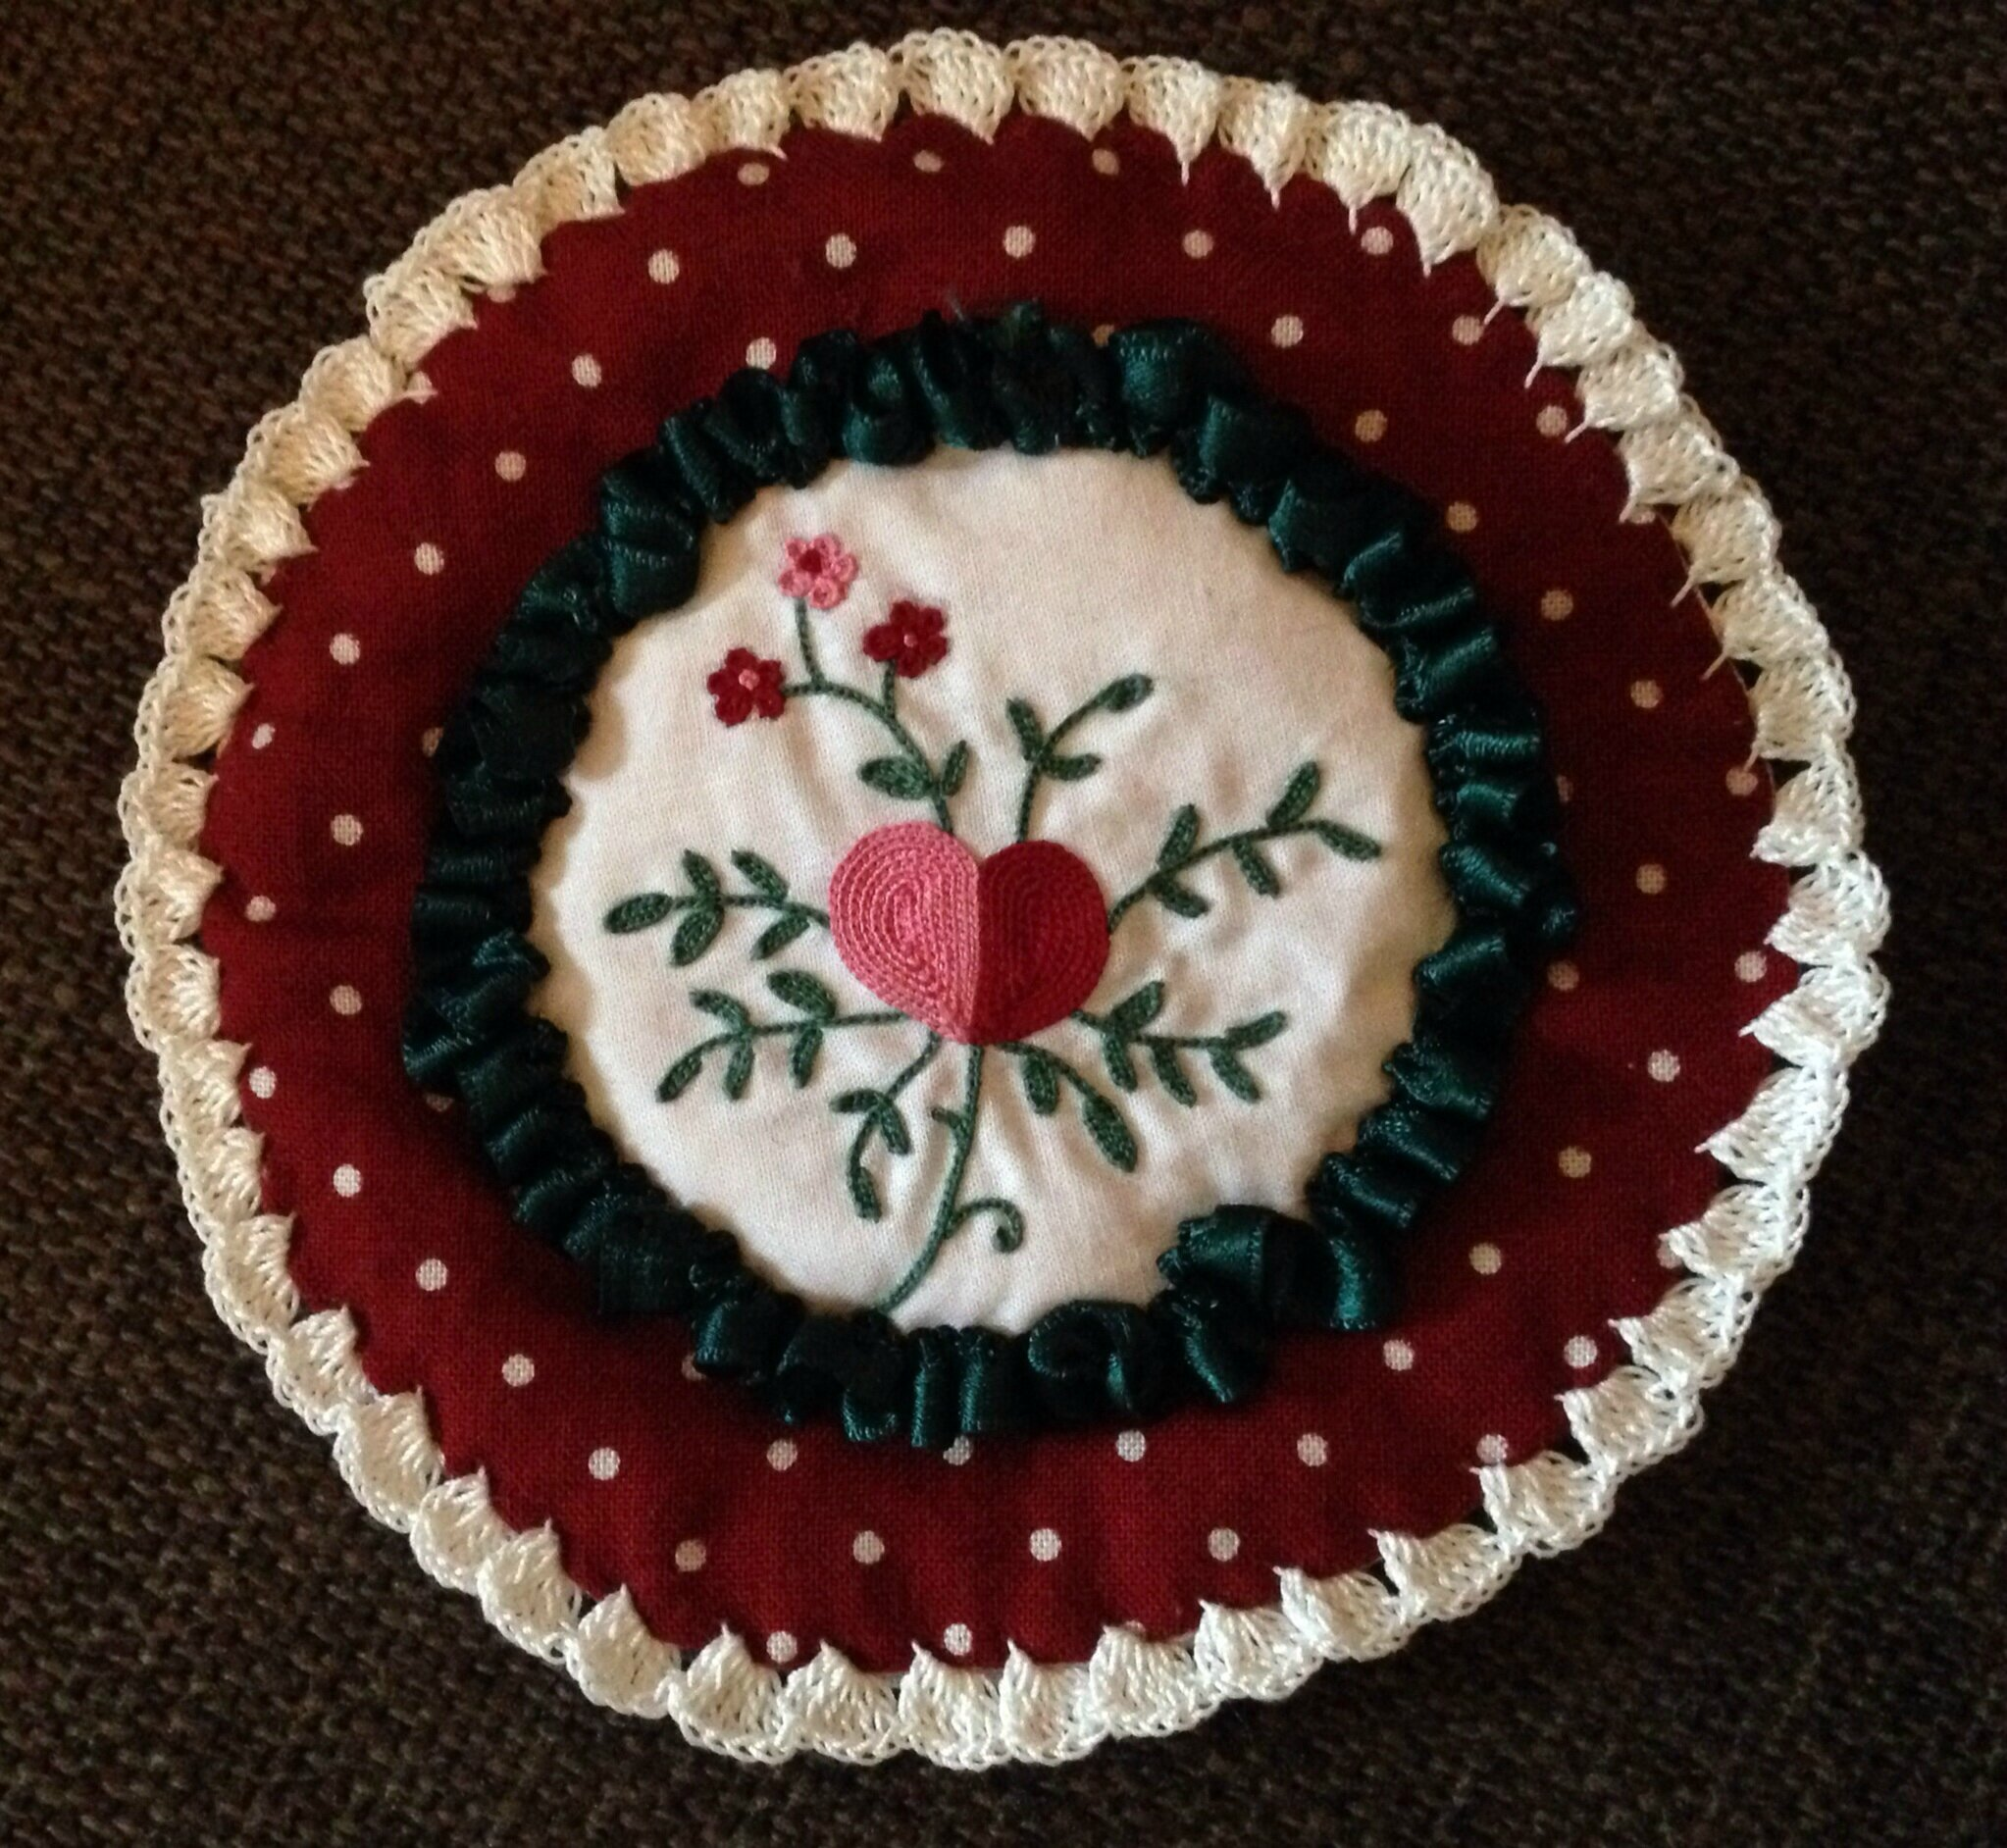 201403 BRODERIE LAURENCE